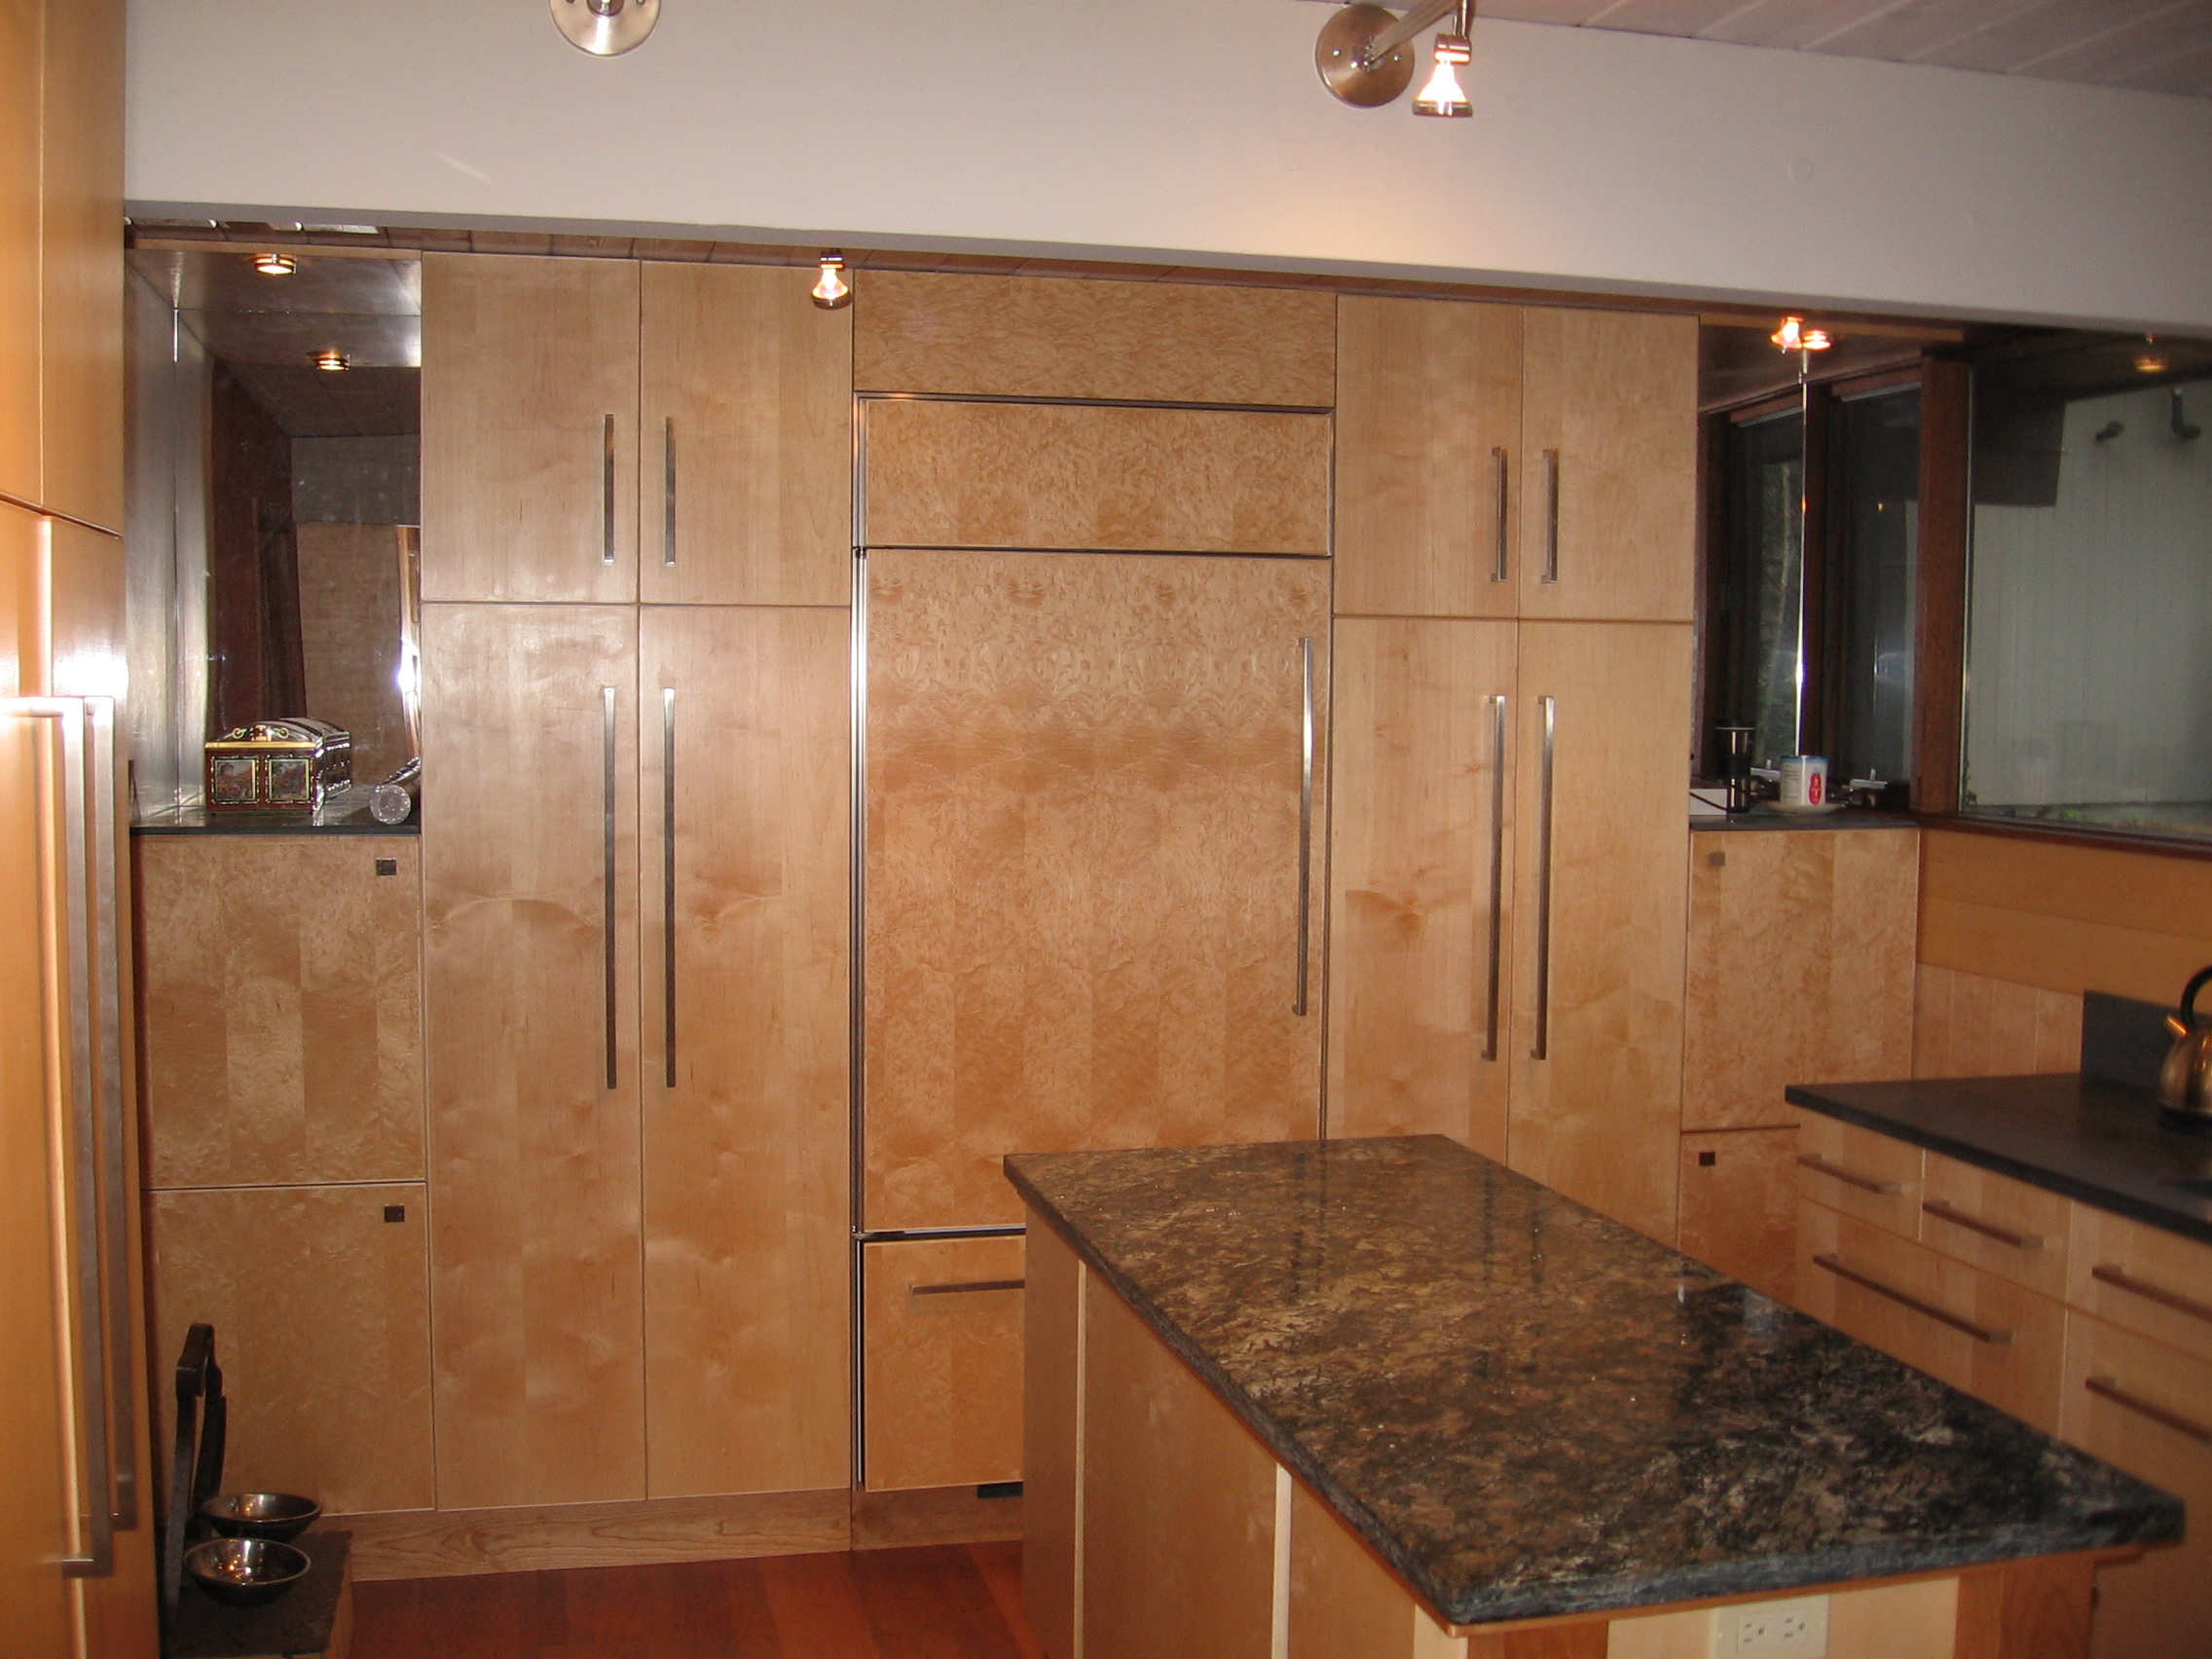 plywood kitchen cabinets pink countertops cabinet grade autos post